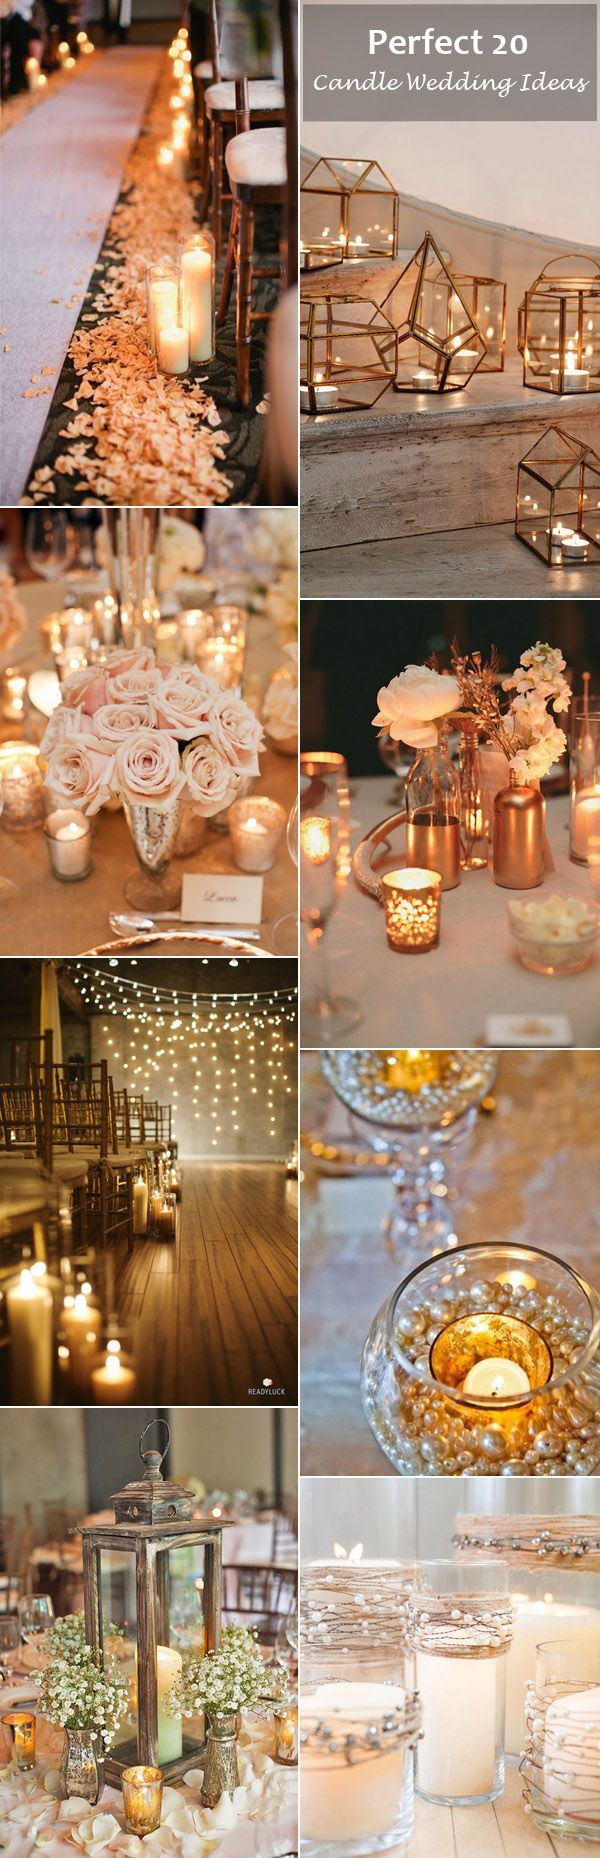 Best 25 Romantic weddings ideas on Pinterest